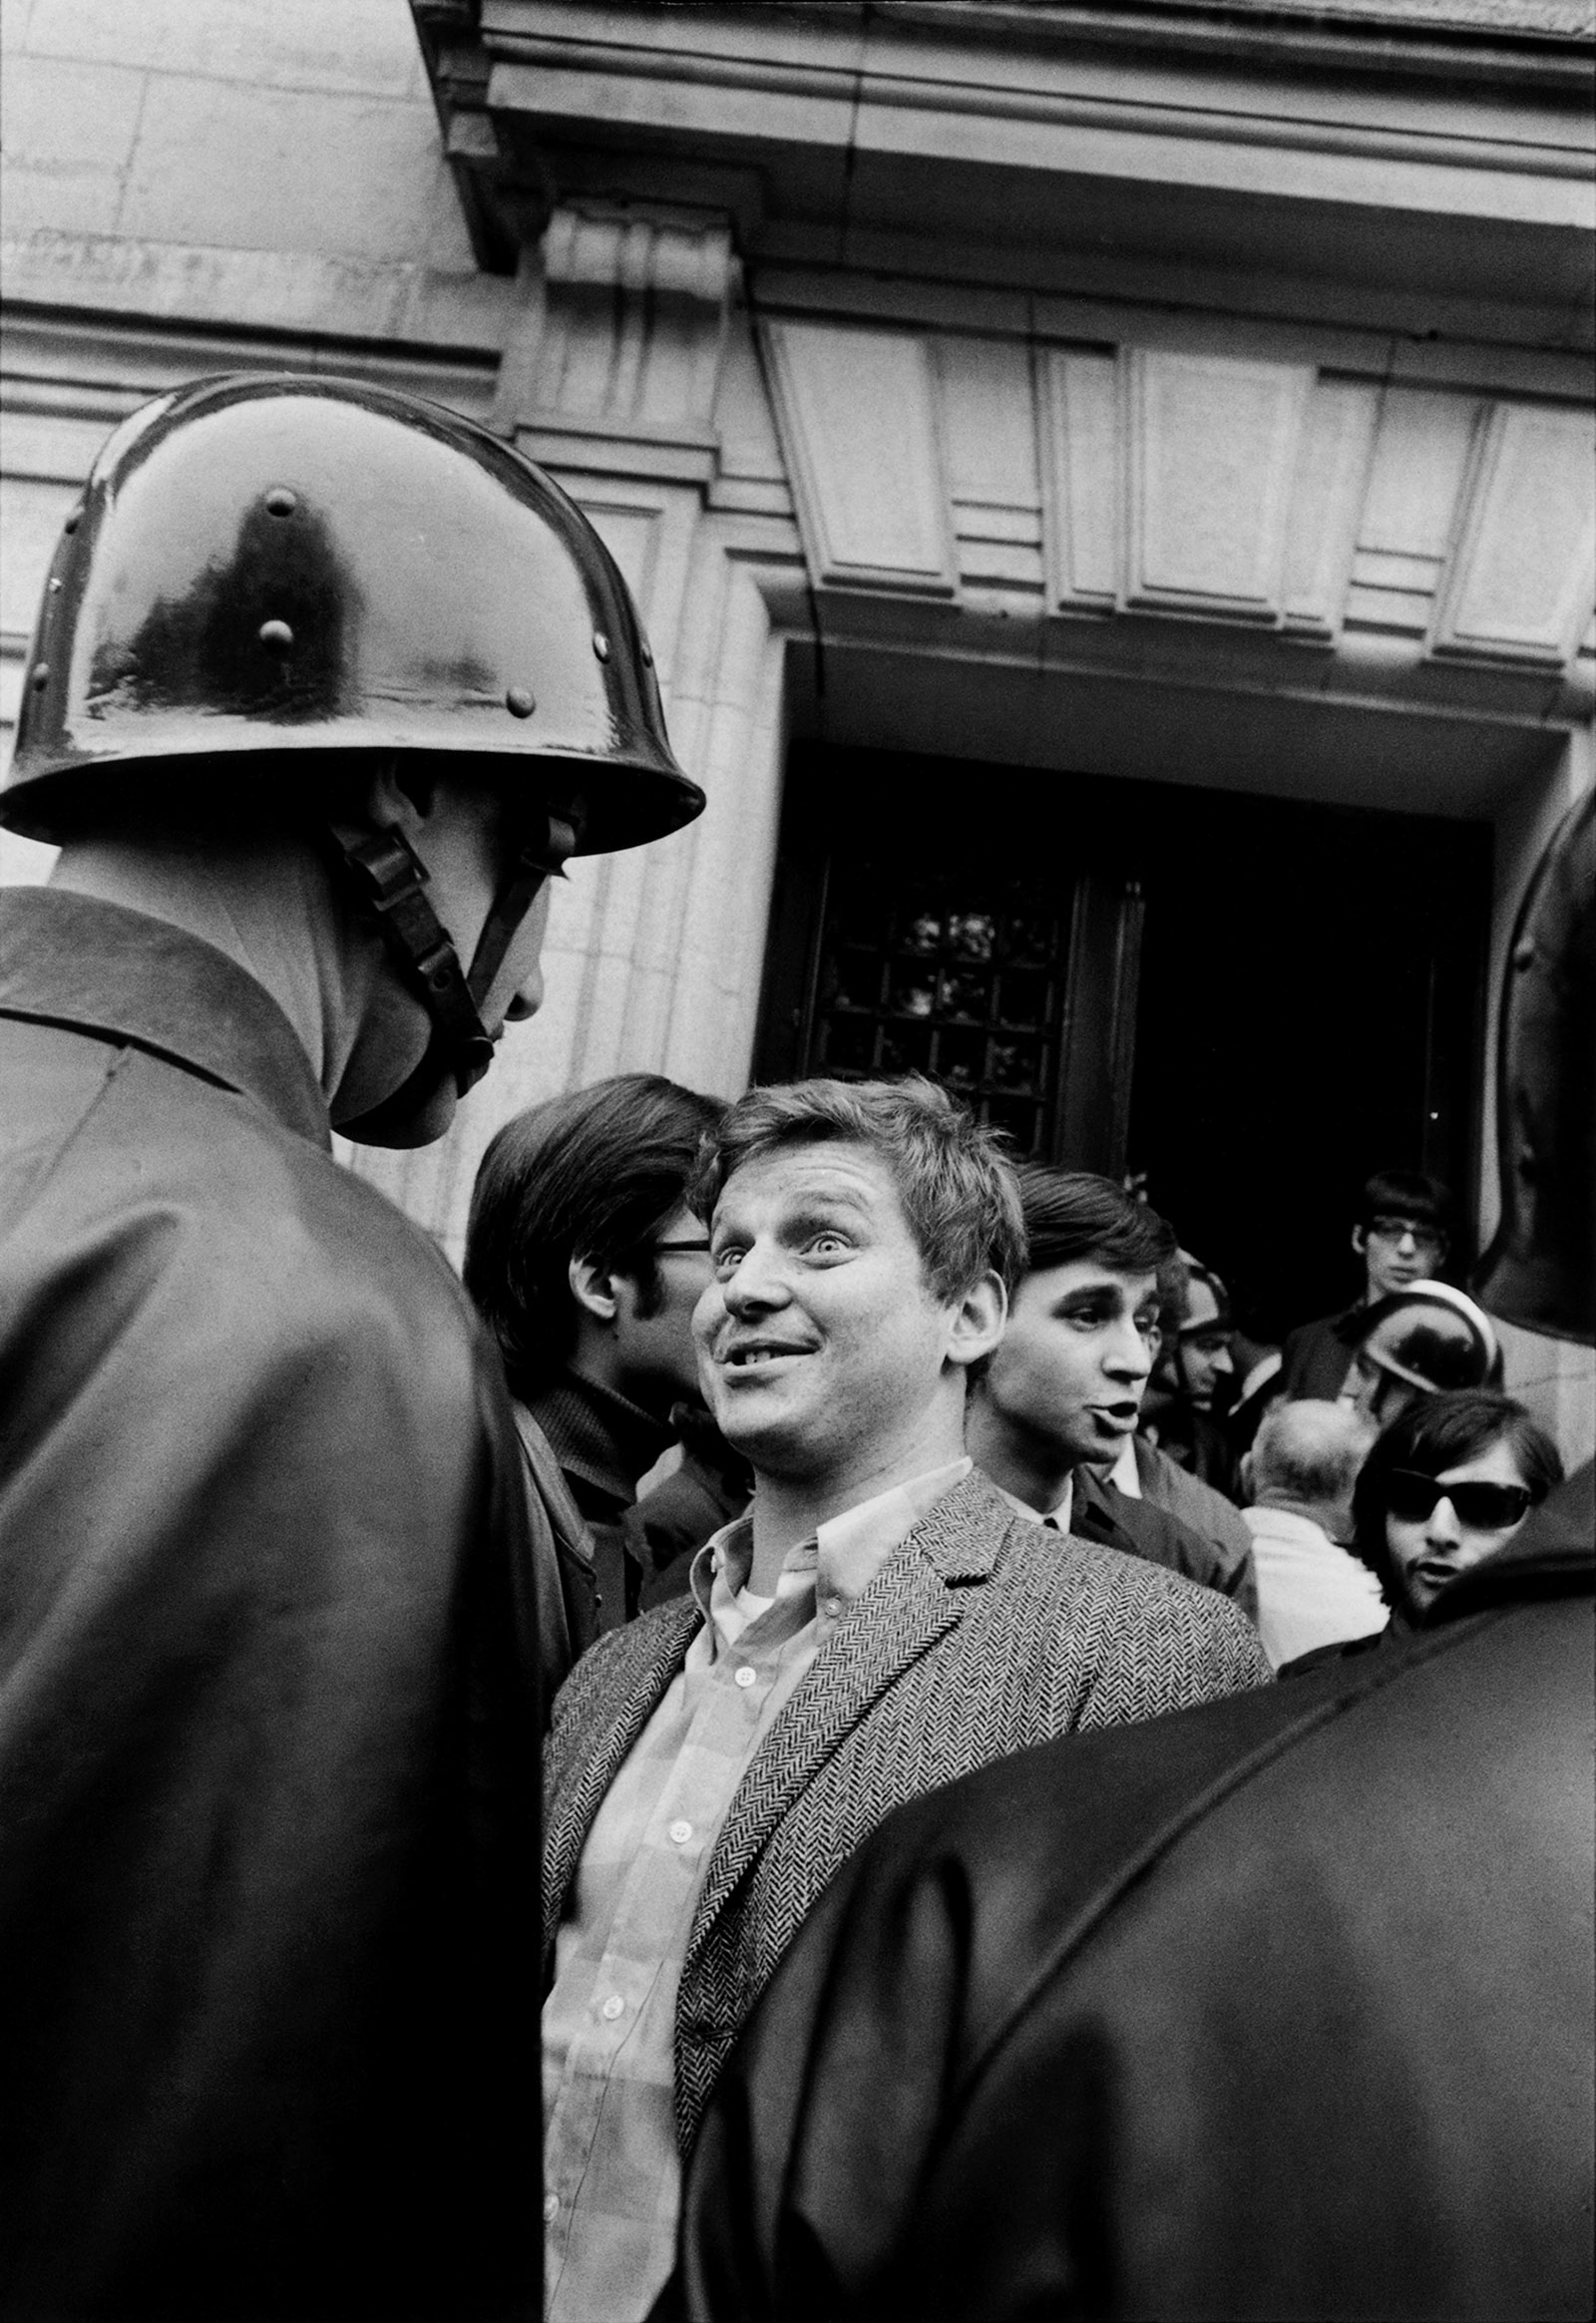 Daniel Cohn-Bendit, one of the leaders of the French student protests, in front of the Sorbonne, Paris, May 1968